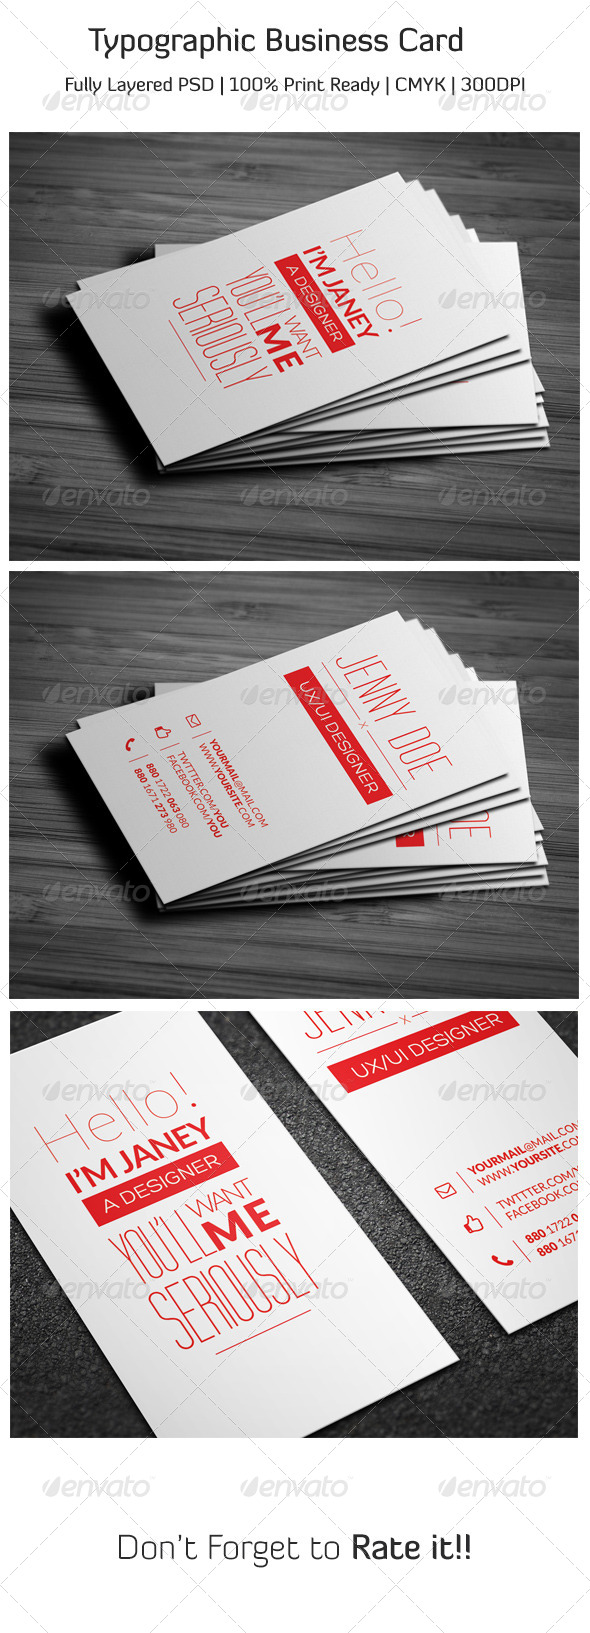 Typographic Business Card - Business Cards Print Templates